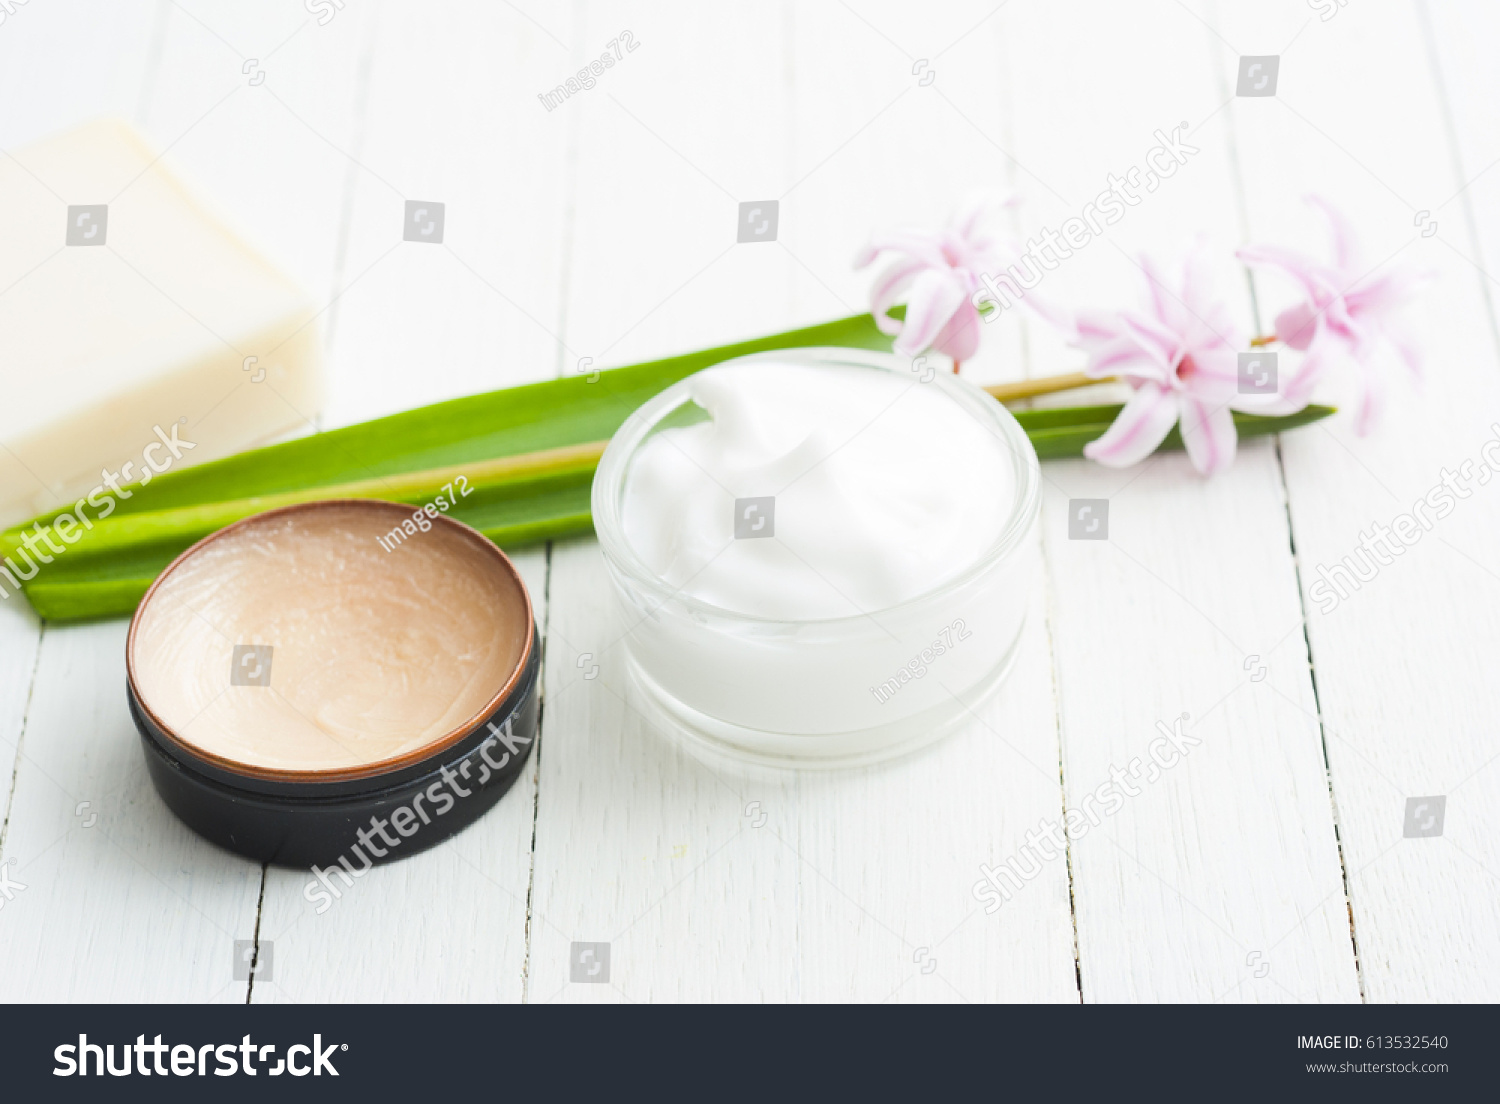 Ointment Makeup Base And Soap With Hyacinth On White Wood Table